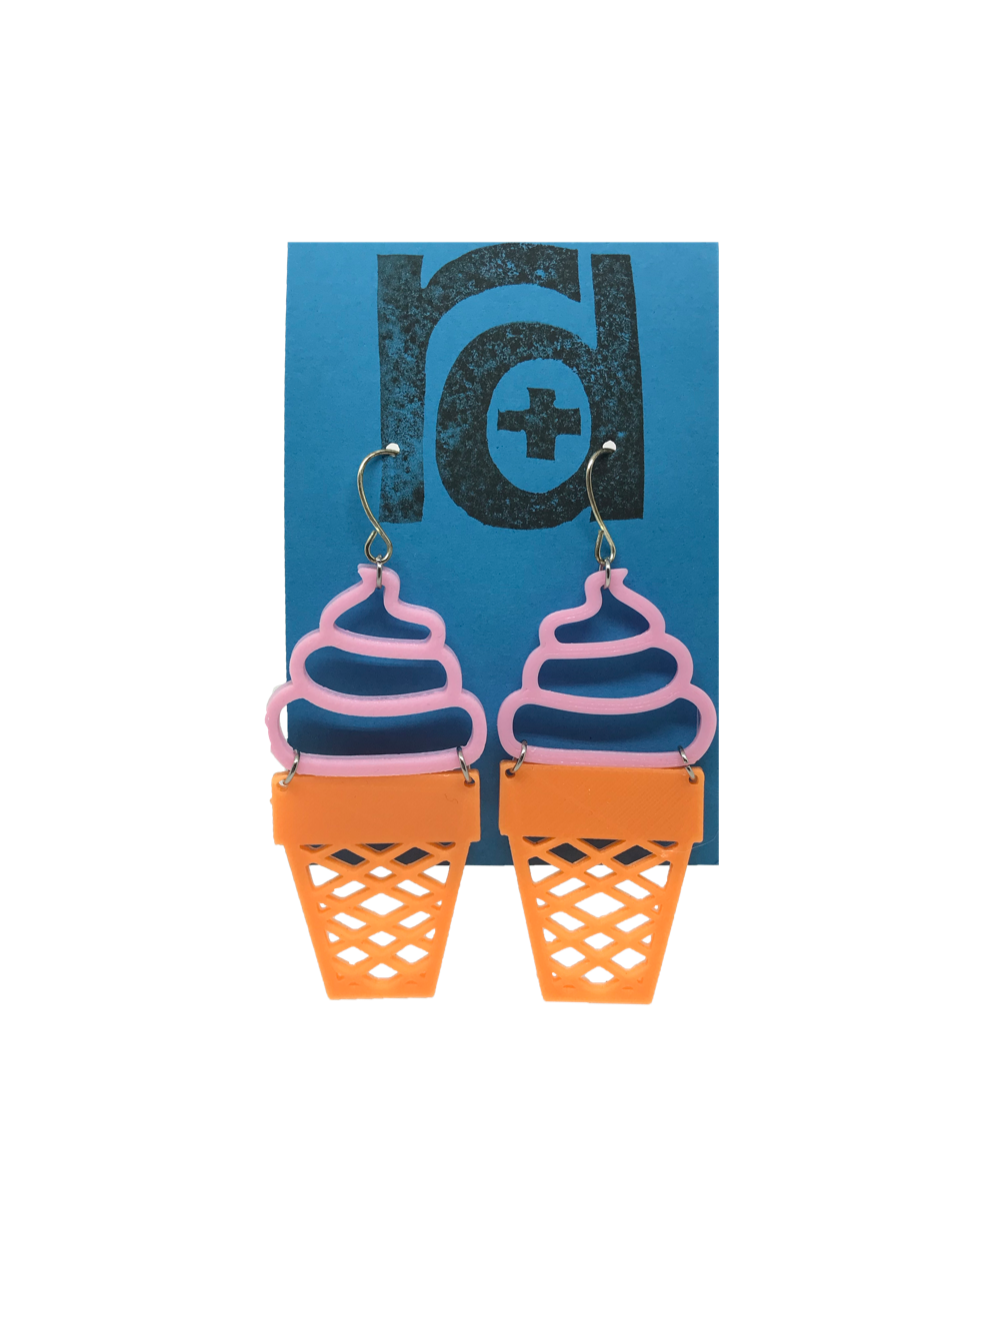 Two earrings shaped as ice cream cones; the top is a pink swirled shape like soft serve and the bottom is orange like a sugar cone.